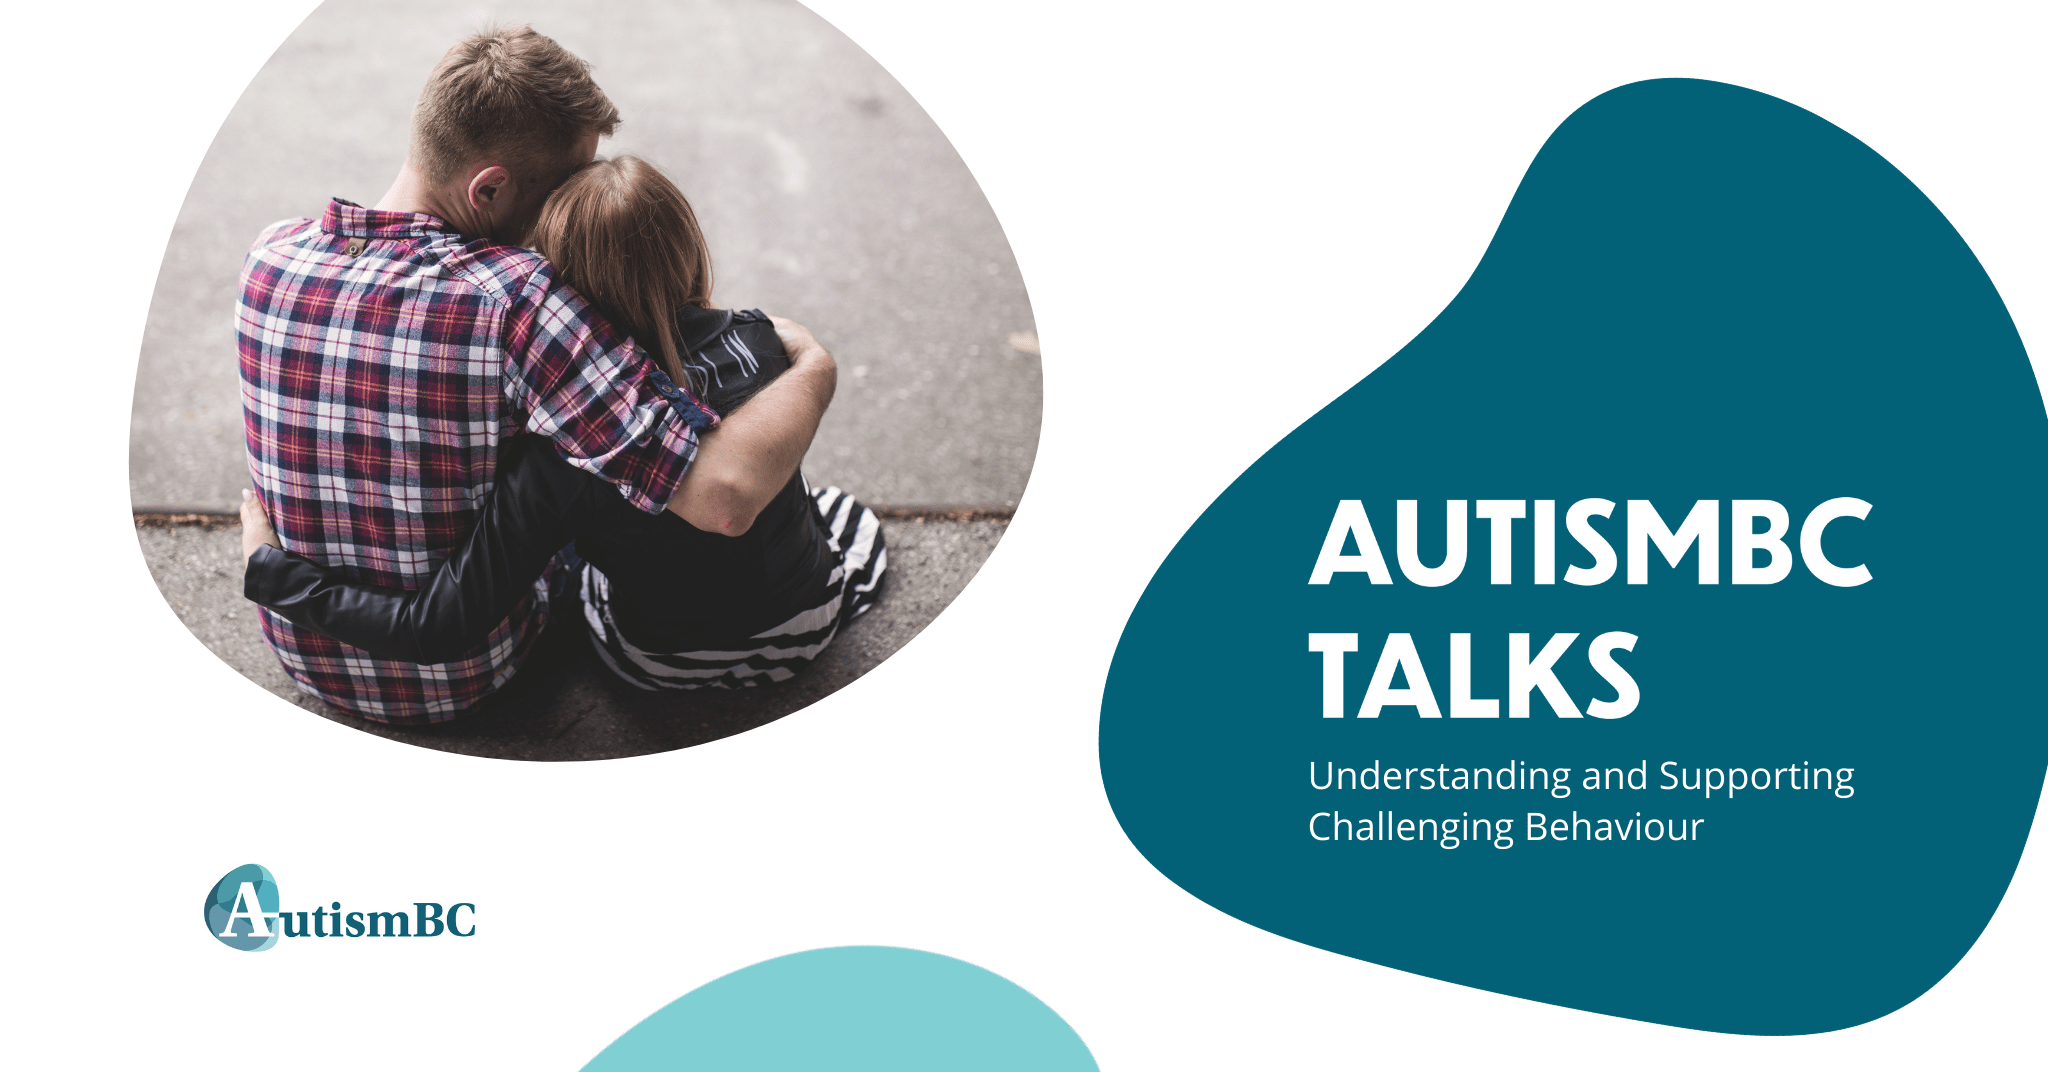 AutismBC Talks: Understanding and Supporting Challenging Behaviours